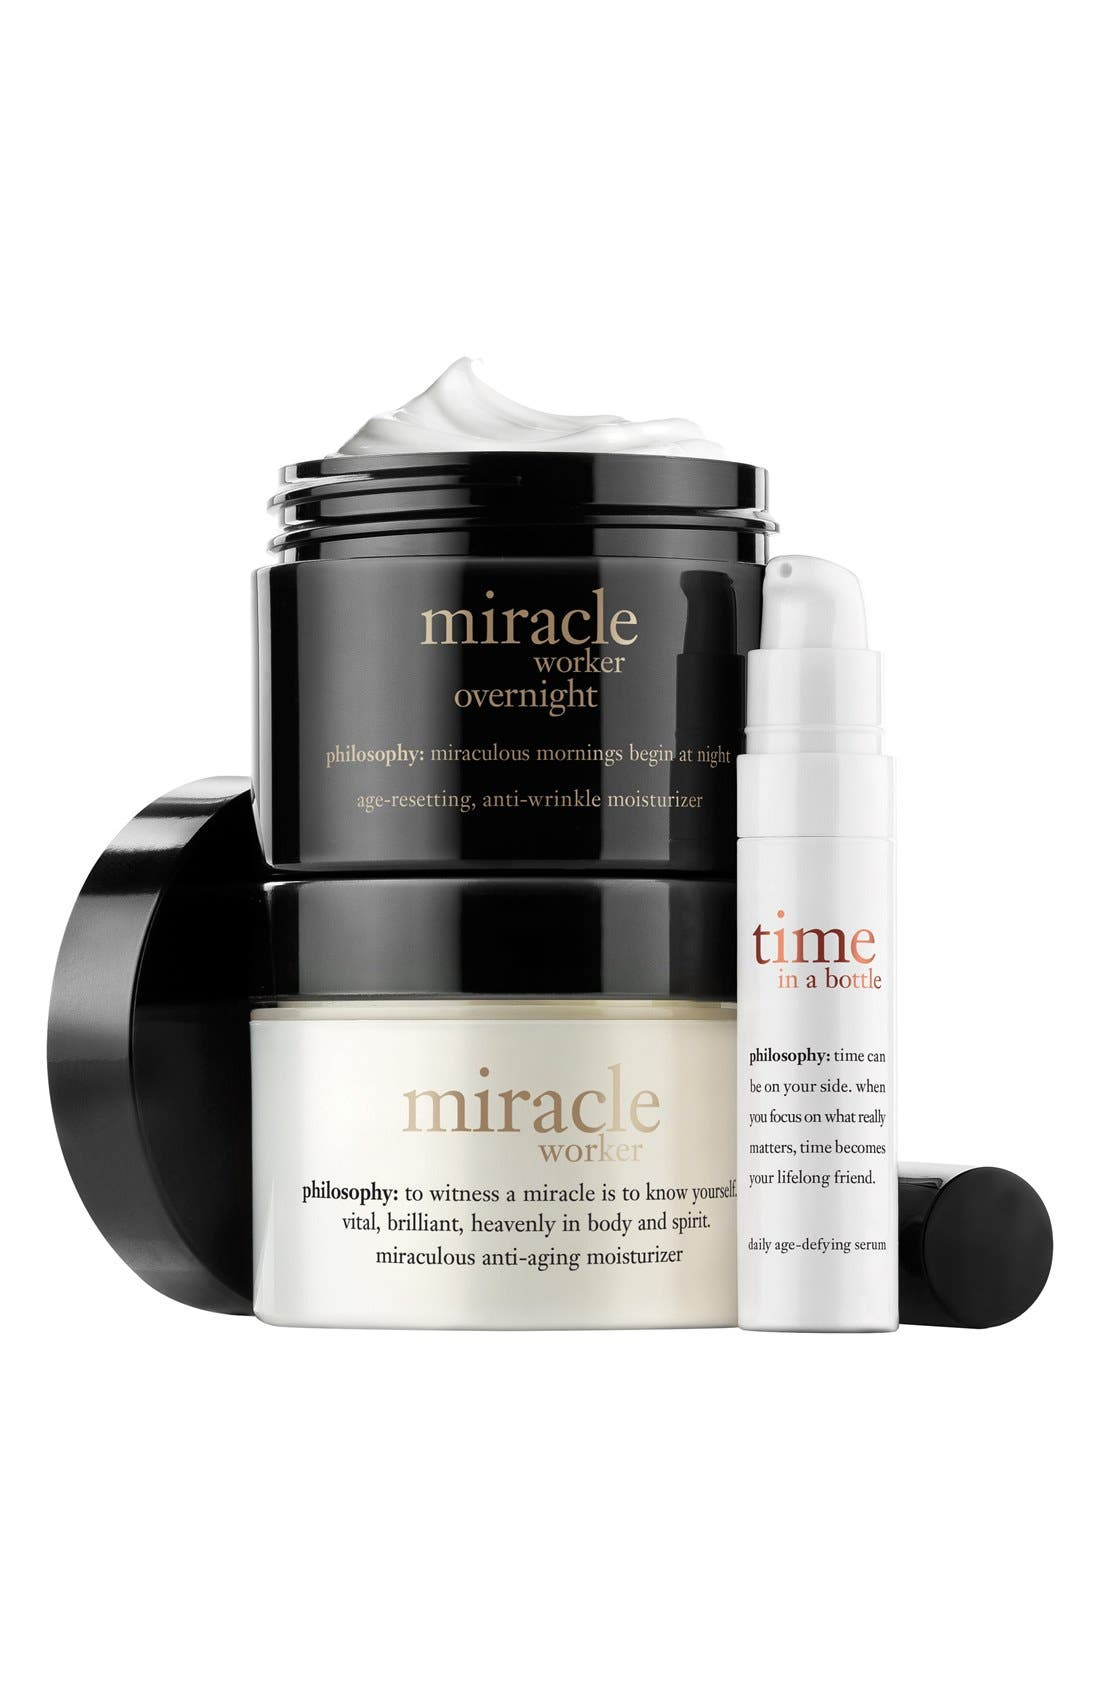 philosophy 'miracle worker' day & night set (Limited Edition) ($85 value)